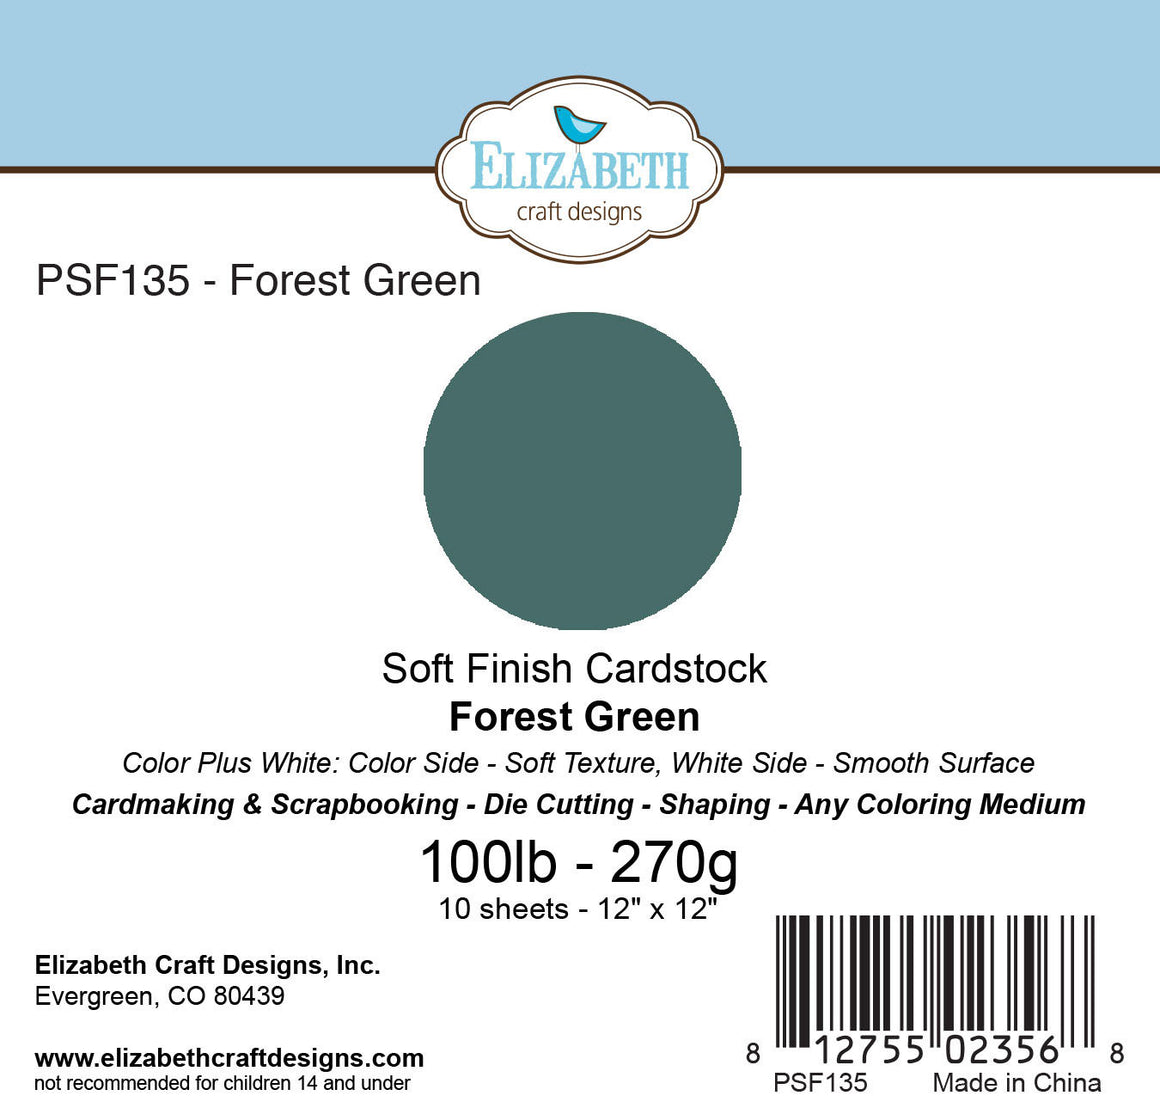 Soft Finish Cardstock, Forest Green - Cardstock - ElizabethCraftDesigns.com